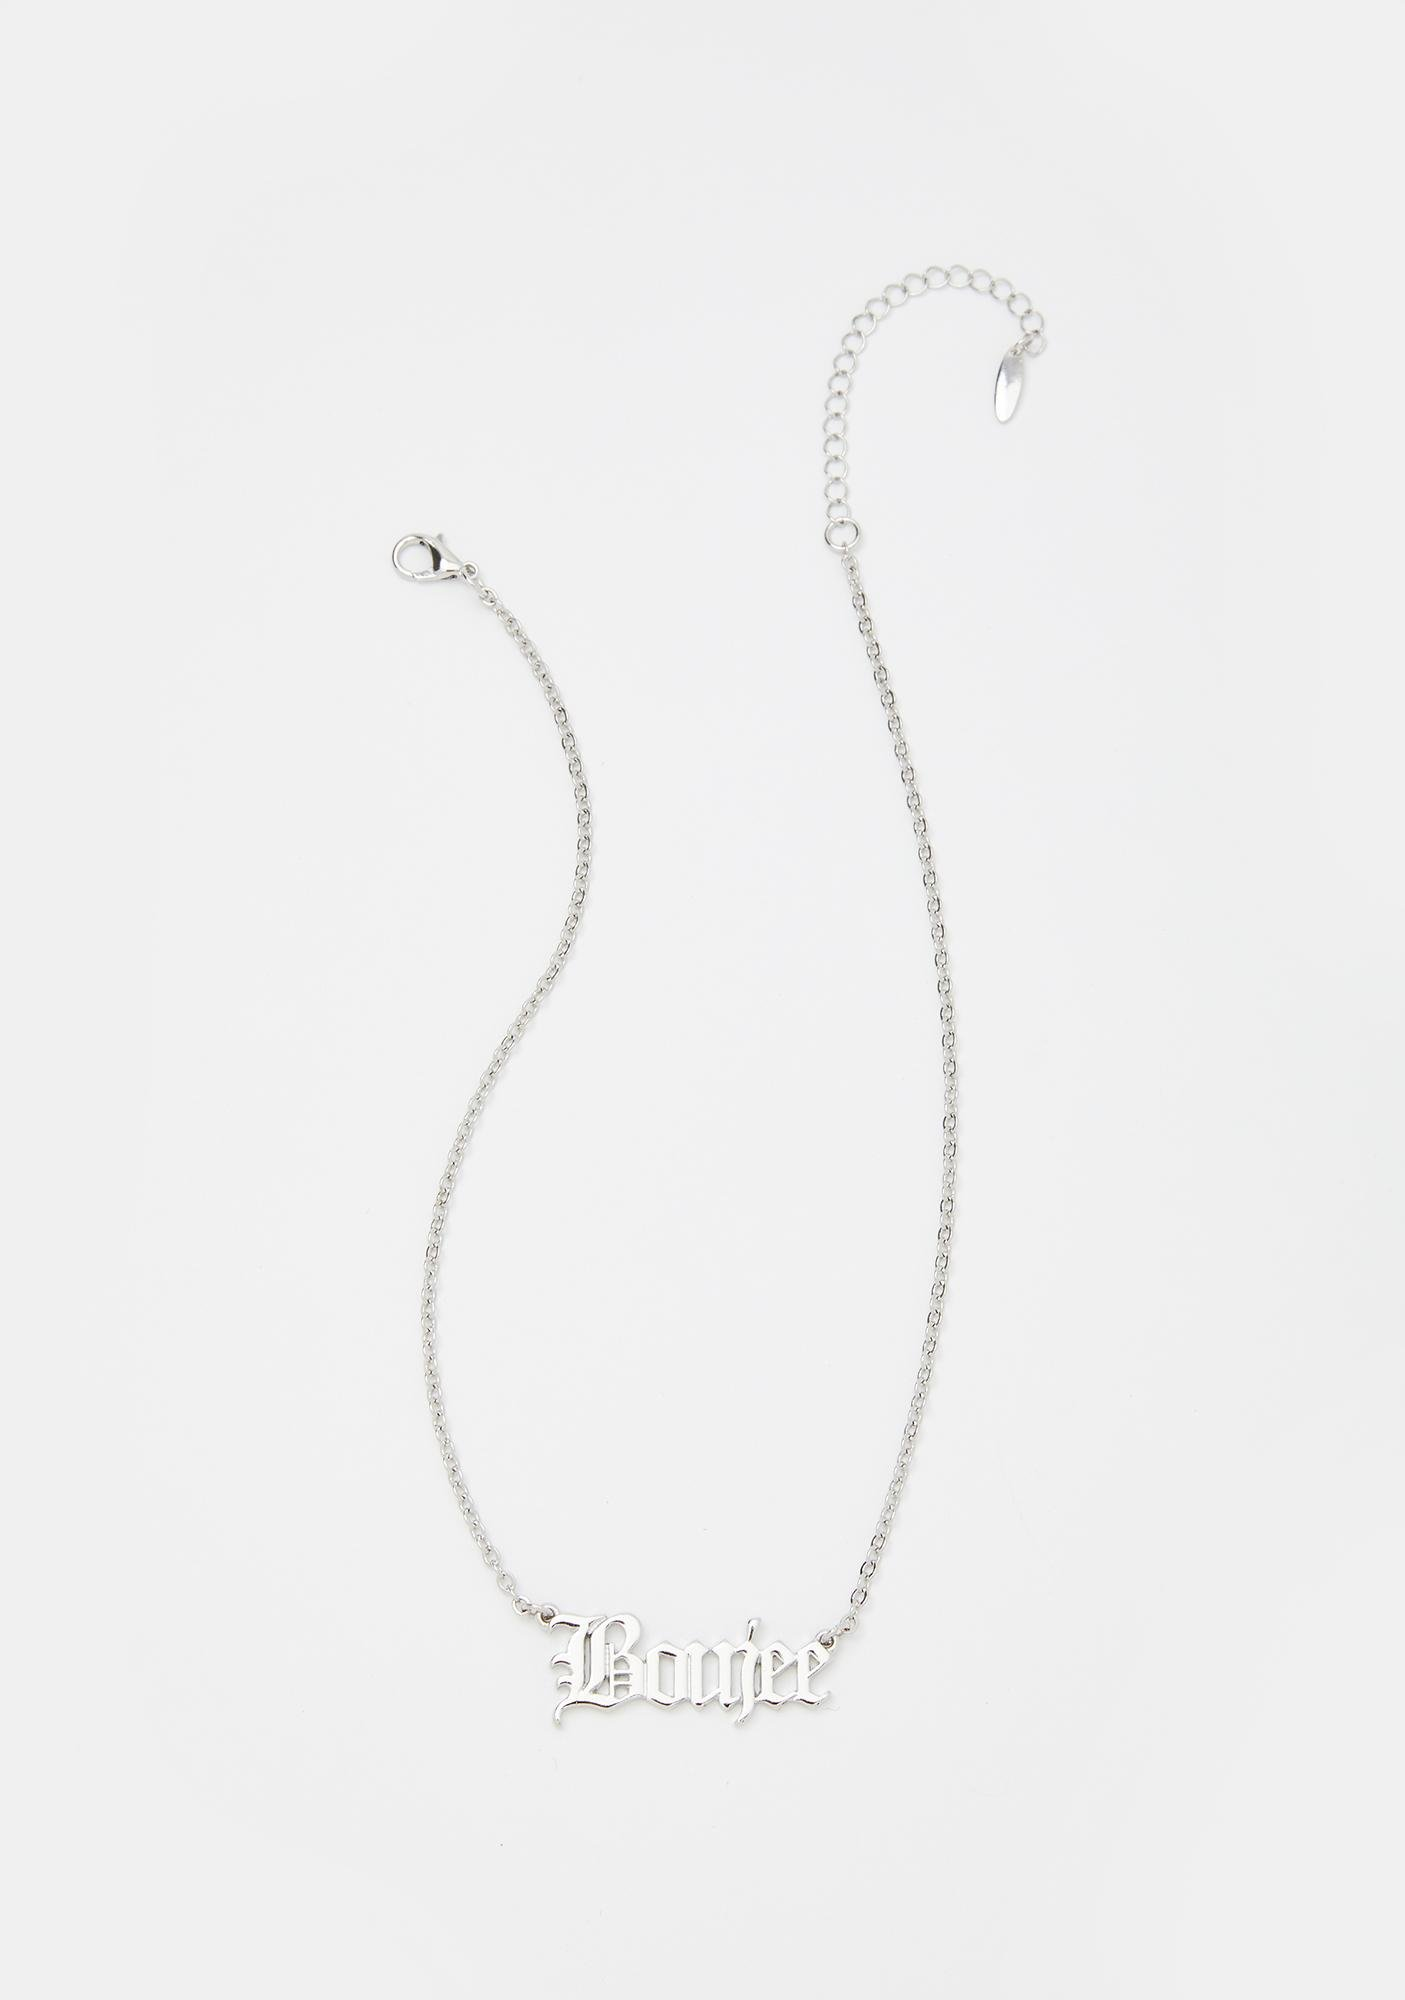 Boujee Appetite Nameplate Necklace